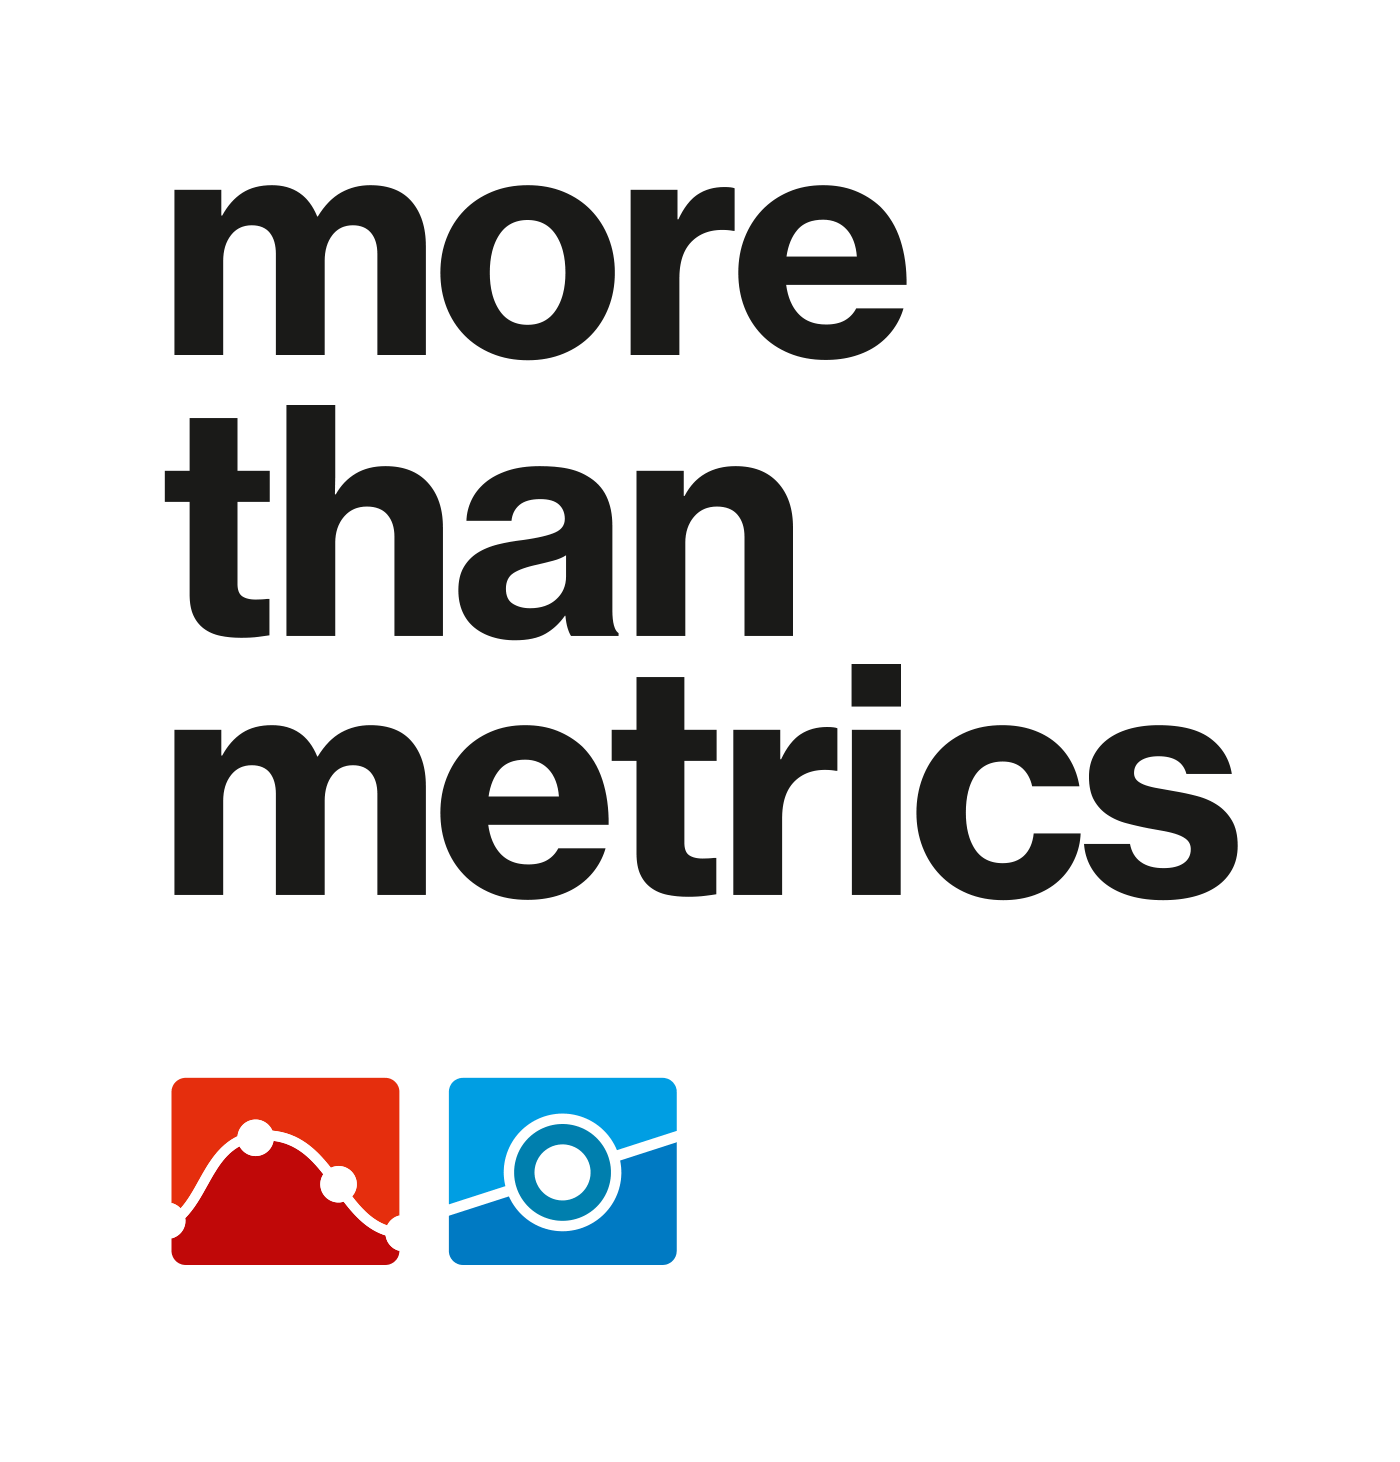 More than Metrics, sponsors of Service Design in Health